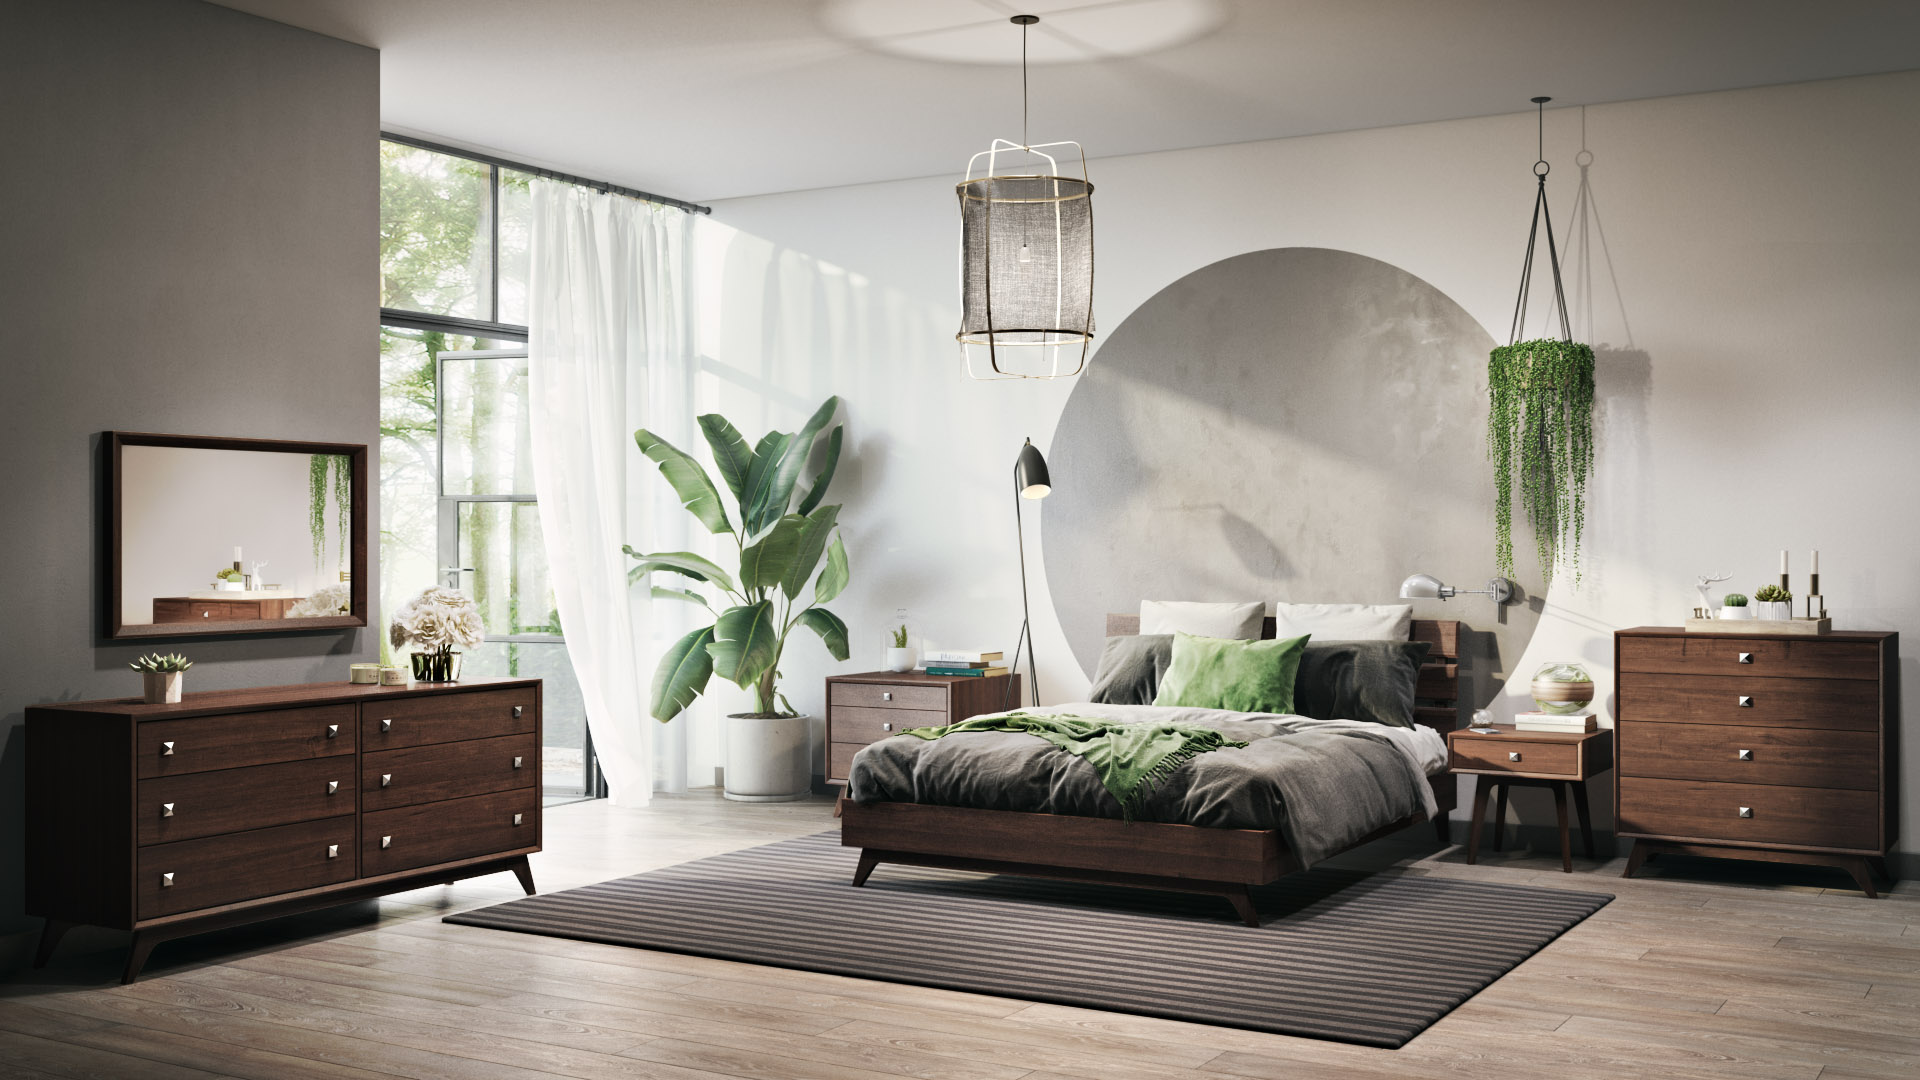 Bedroom Furniture on a Shopping App